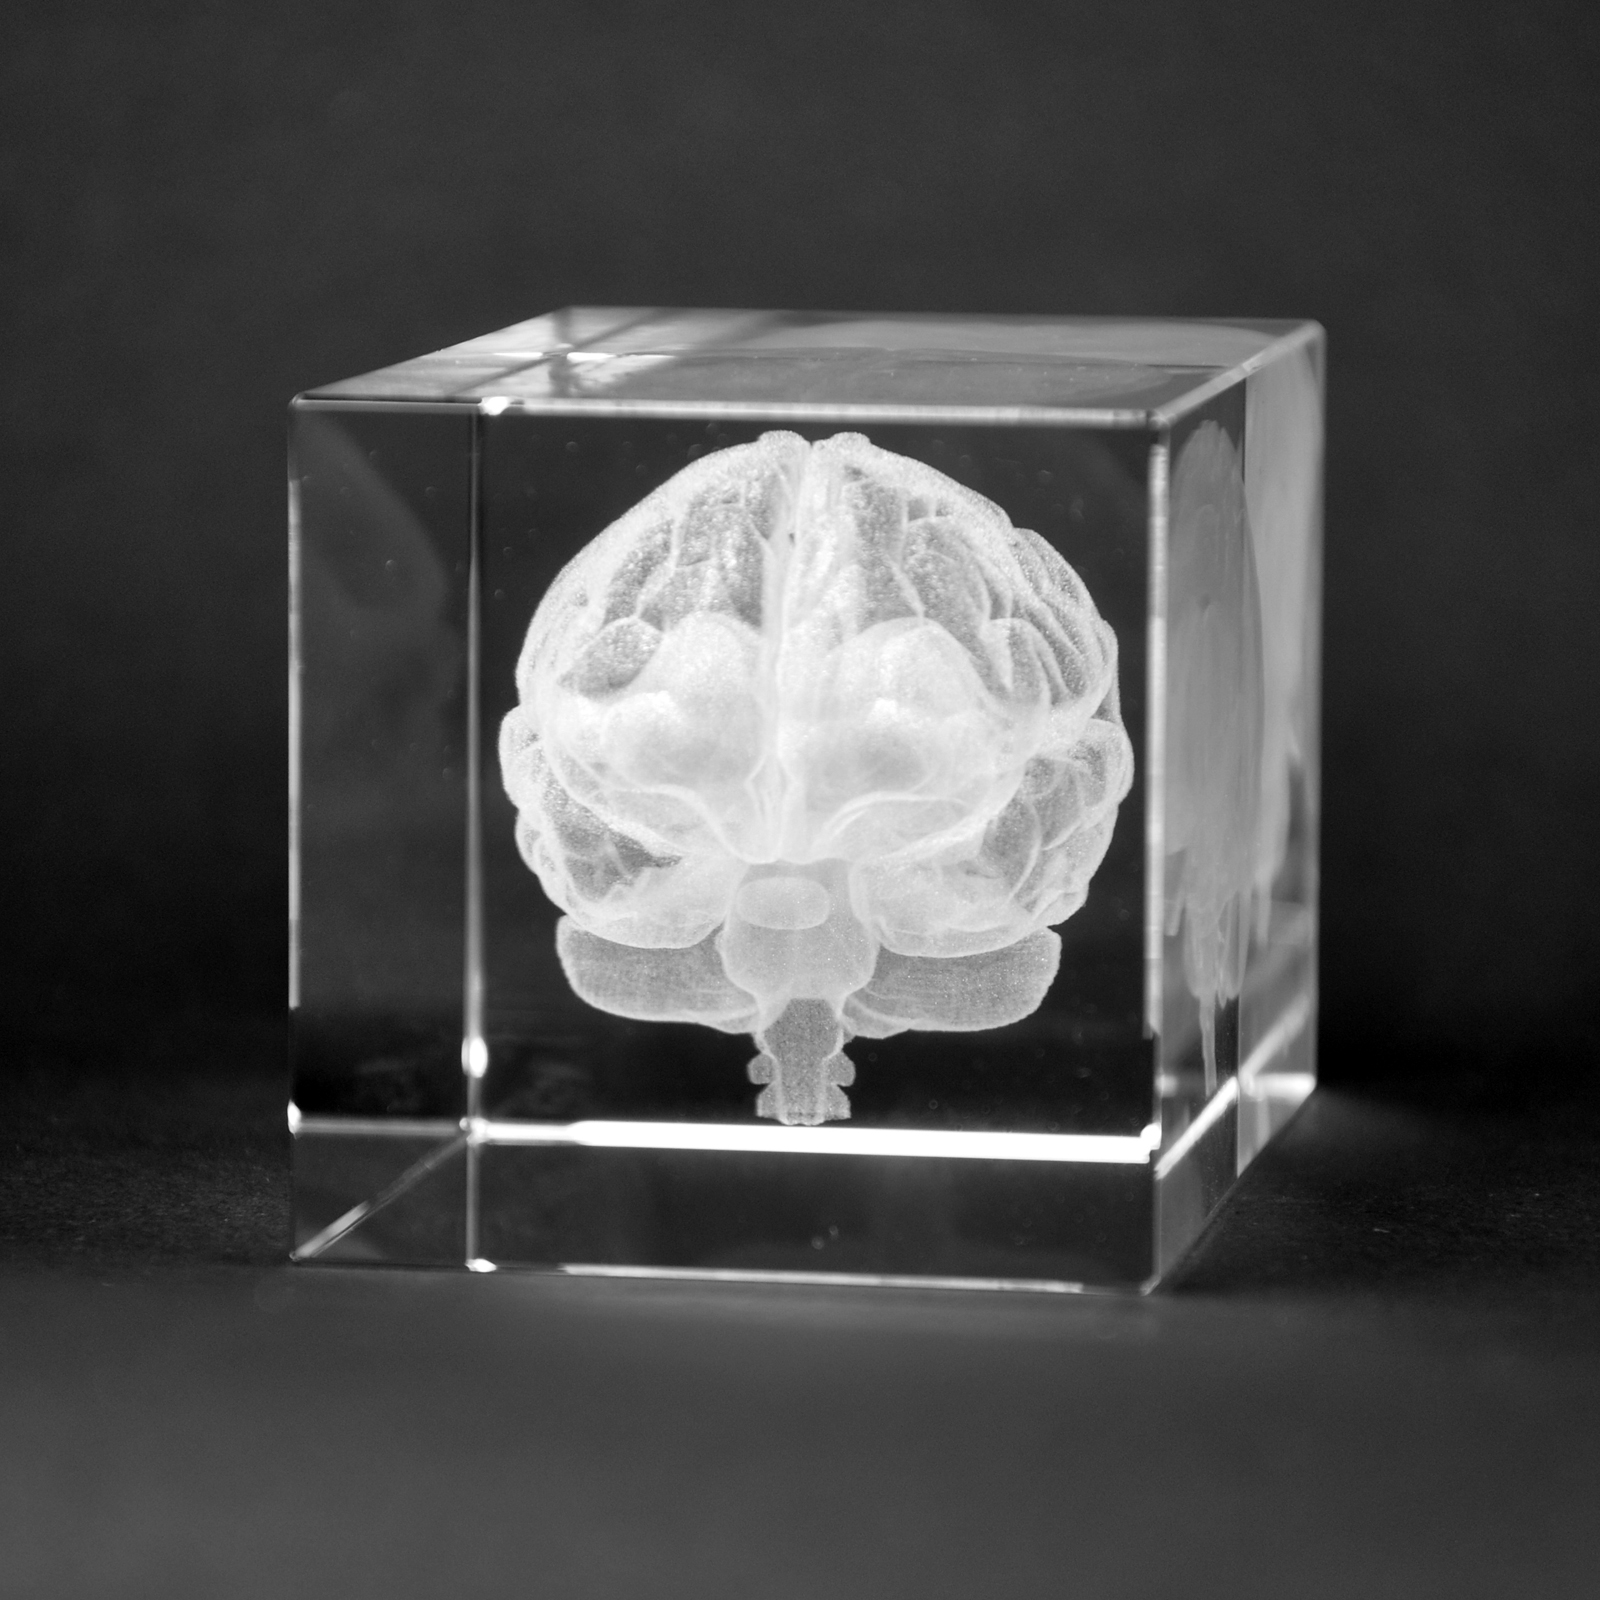 Warp United Crystal 3D Human Brain with Coronary Artery Anatomy High Definition Laser Engraved Medical Science Gift Table Decoration 1lb Optical Glass